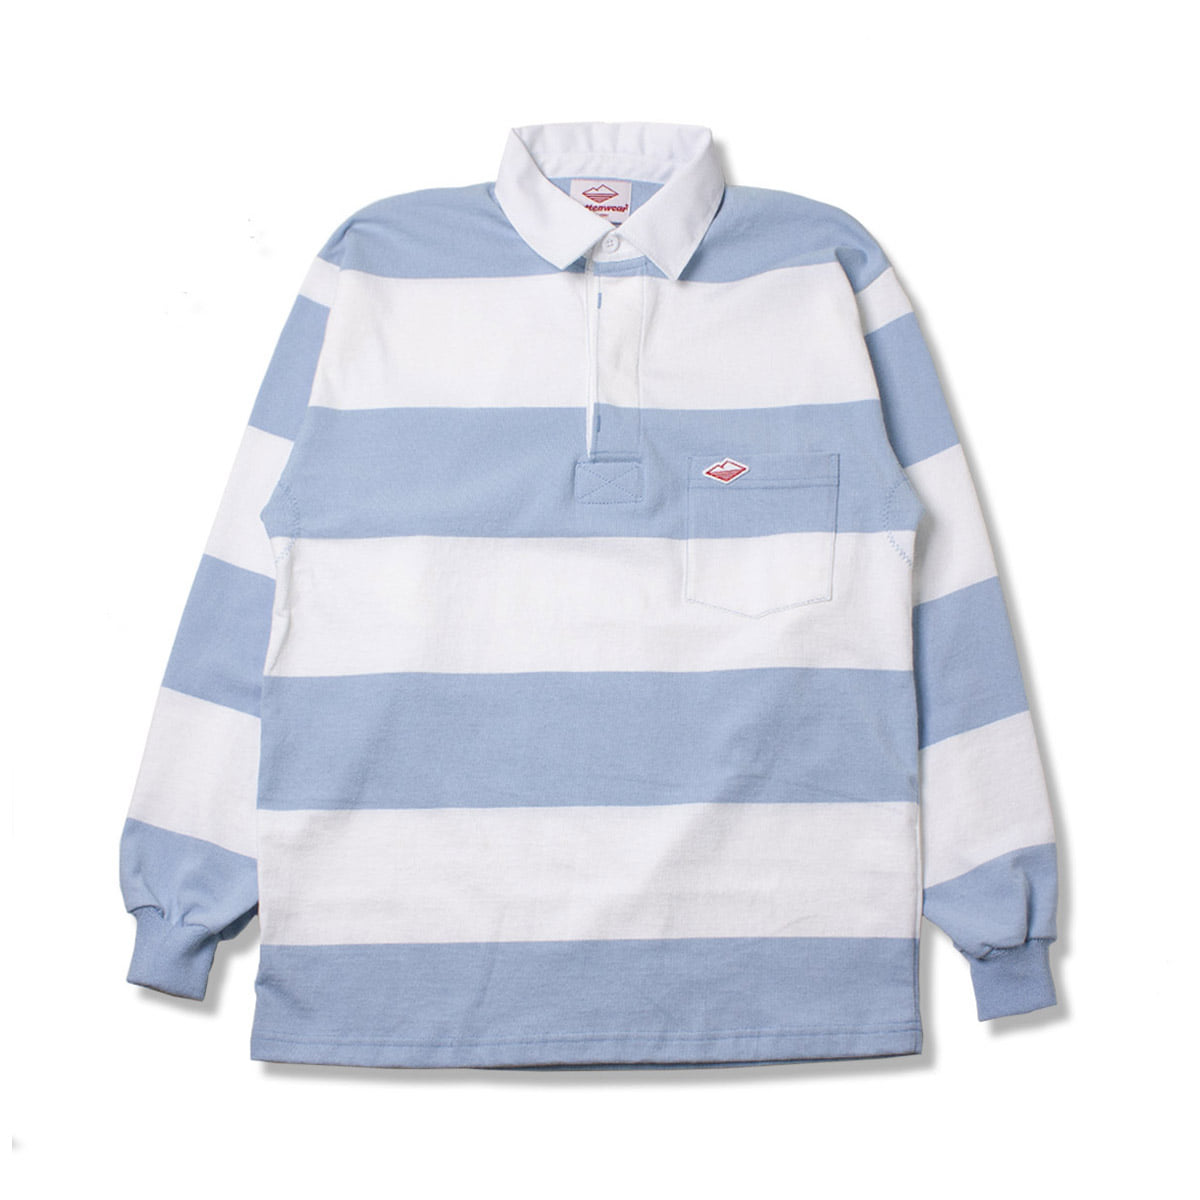 [BATTENWEAR] POCKET RUGBY SHIRT 'WHITE / LIGHT BLUE'